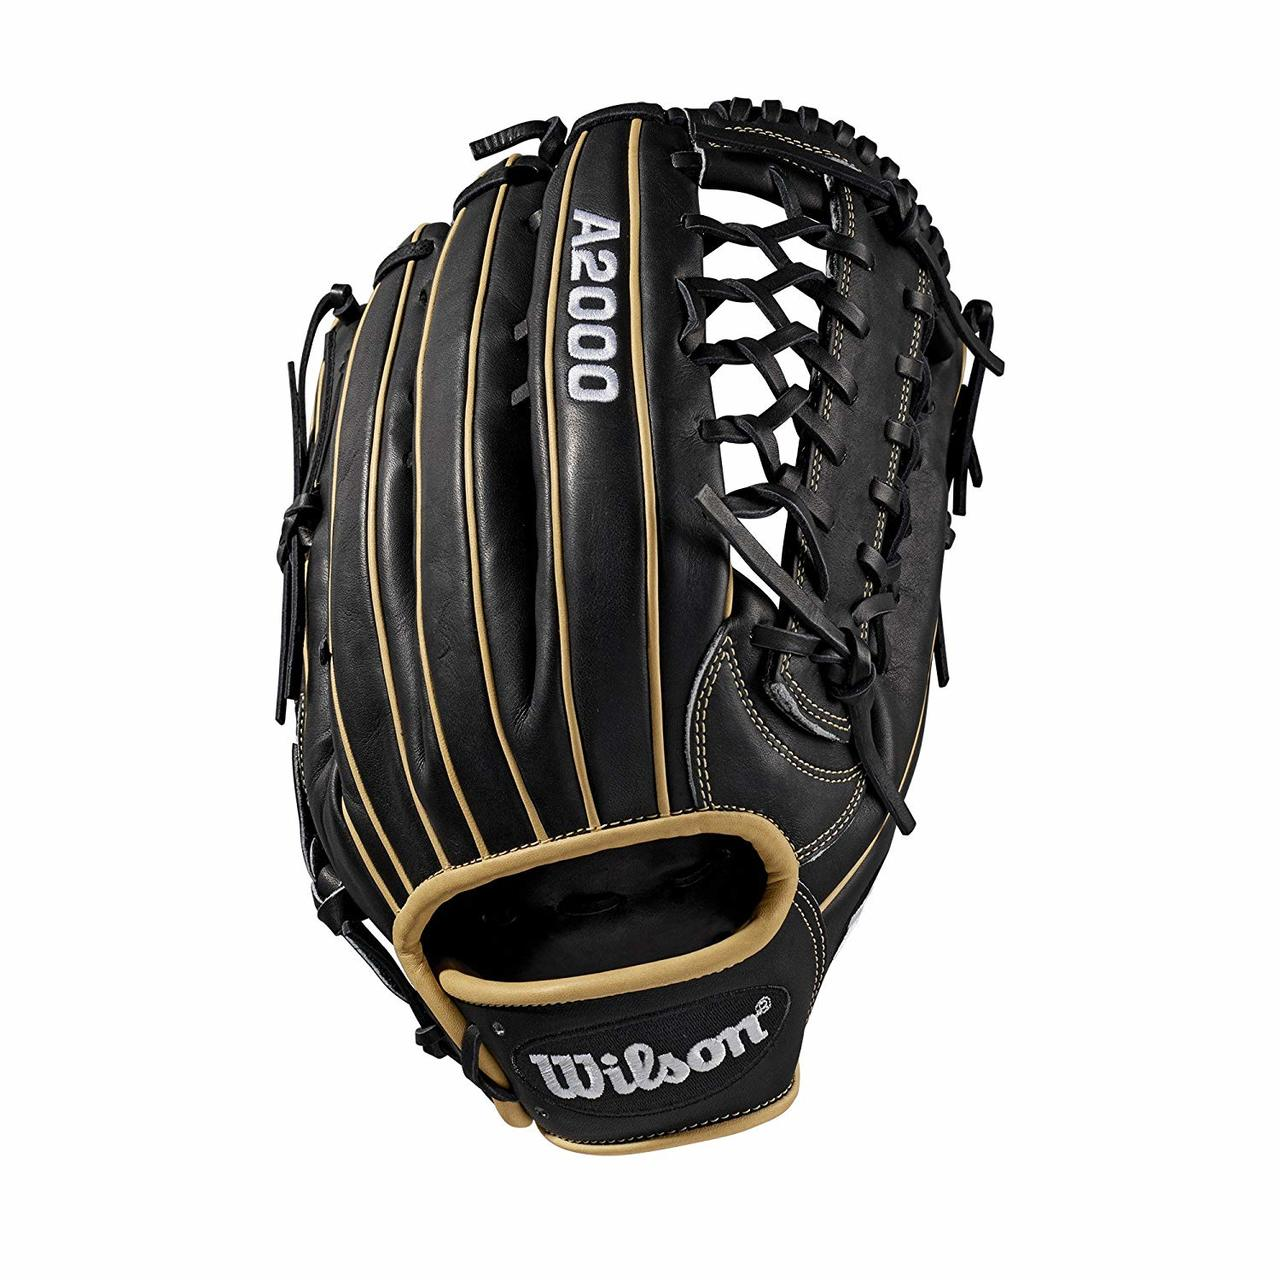 wilson-a2000-kp92-12-5-baseball-glove-2019-right-hand-throw WTA20RB19KP92-RightHandThrow  887768721626 The A2000 KP92 is a widely popular model among outfielders for